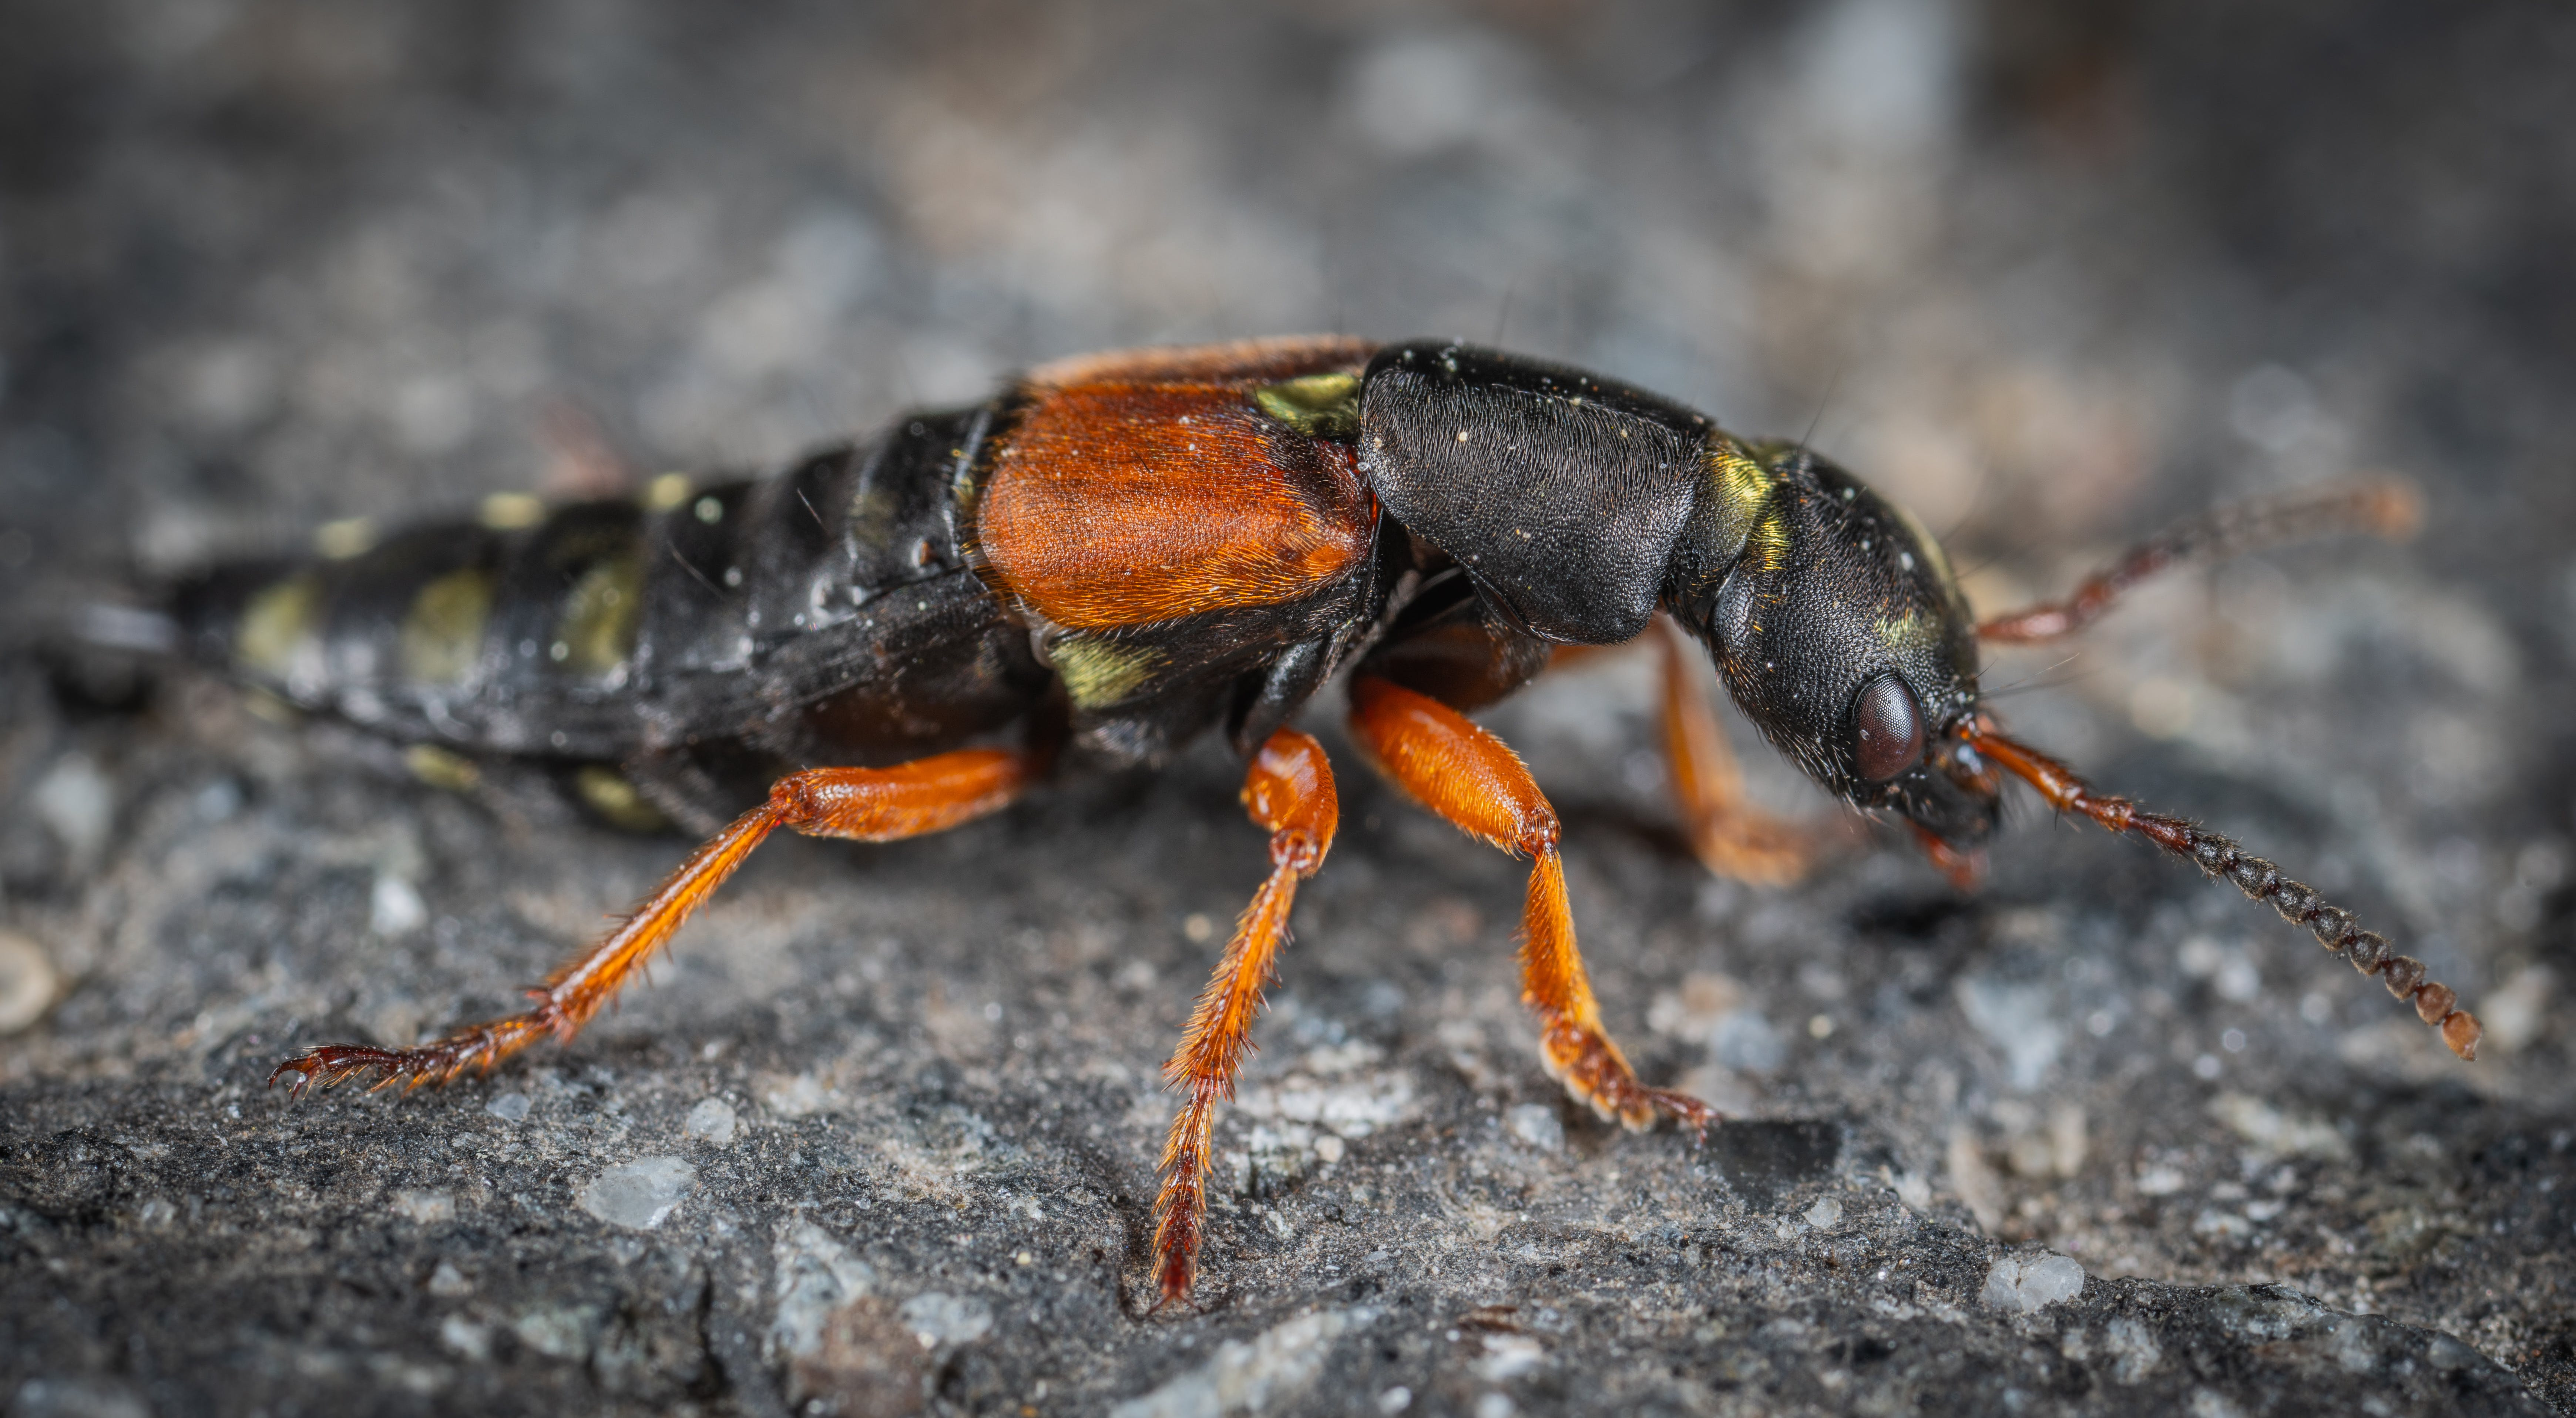 Black and Orange Beetle on Grey Surface